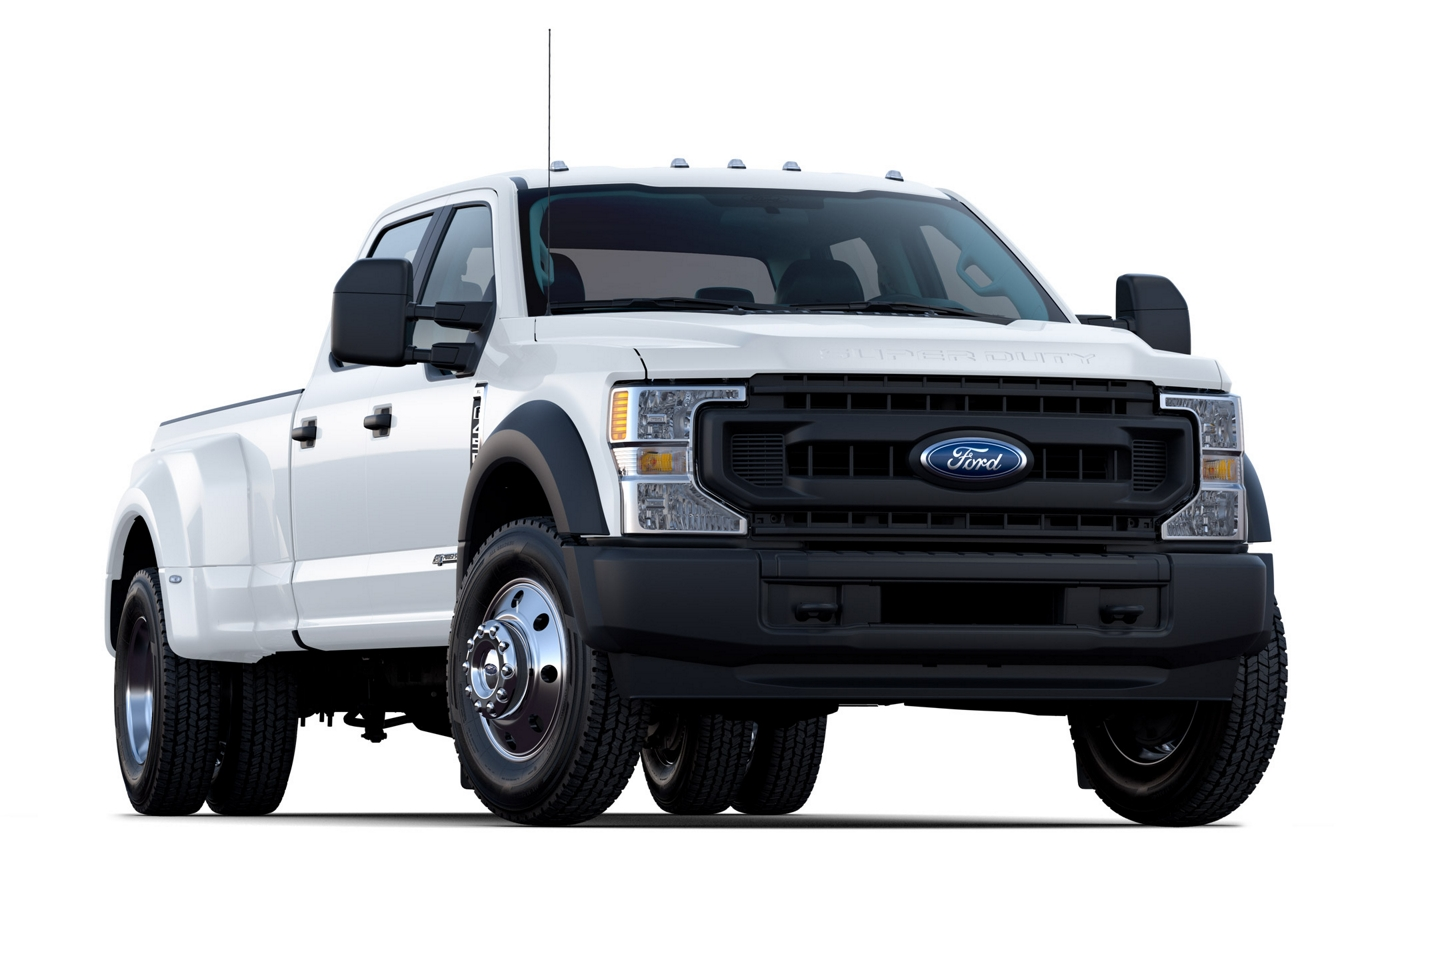 2020 Ford® Super Duty F450 XL Commercial Truck | Model ... on ford 7 pin wiring diagram, ford falcon wiring-diagram, ford econoline van wiring diagram, 1987 ford e350 wiring diagram, f250 wiring diagram, ford alternator plug wiring diagram, ford super duty, ford mirror wiring diagram, 86 ford wiring diagram, ford truck electrical diagrams, ford aerostar wiring diagram, 1956 ford wiring diagram, 79 ford wiring diagram, ford oxygen sensor wiring 1990, ford f-350 4x4 wiring diagrams, ford fairlane wiring diagram, 1989 ford wiring diagram, ford e 450 wiring diagrams, 01 dodge 1500 wiring diagram, ford electrical wiring diagrams,